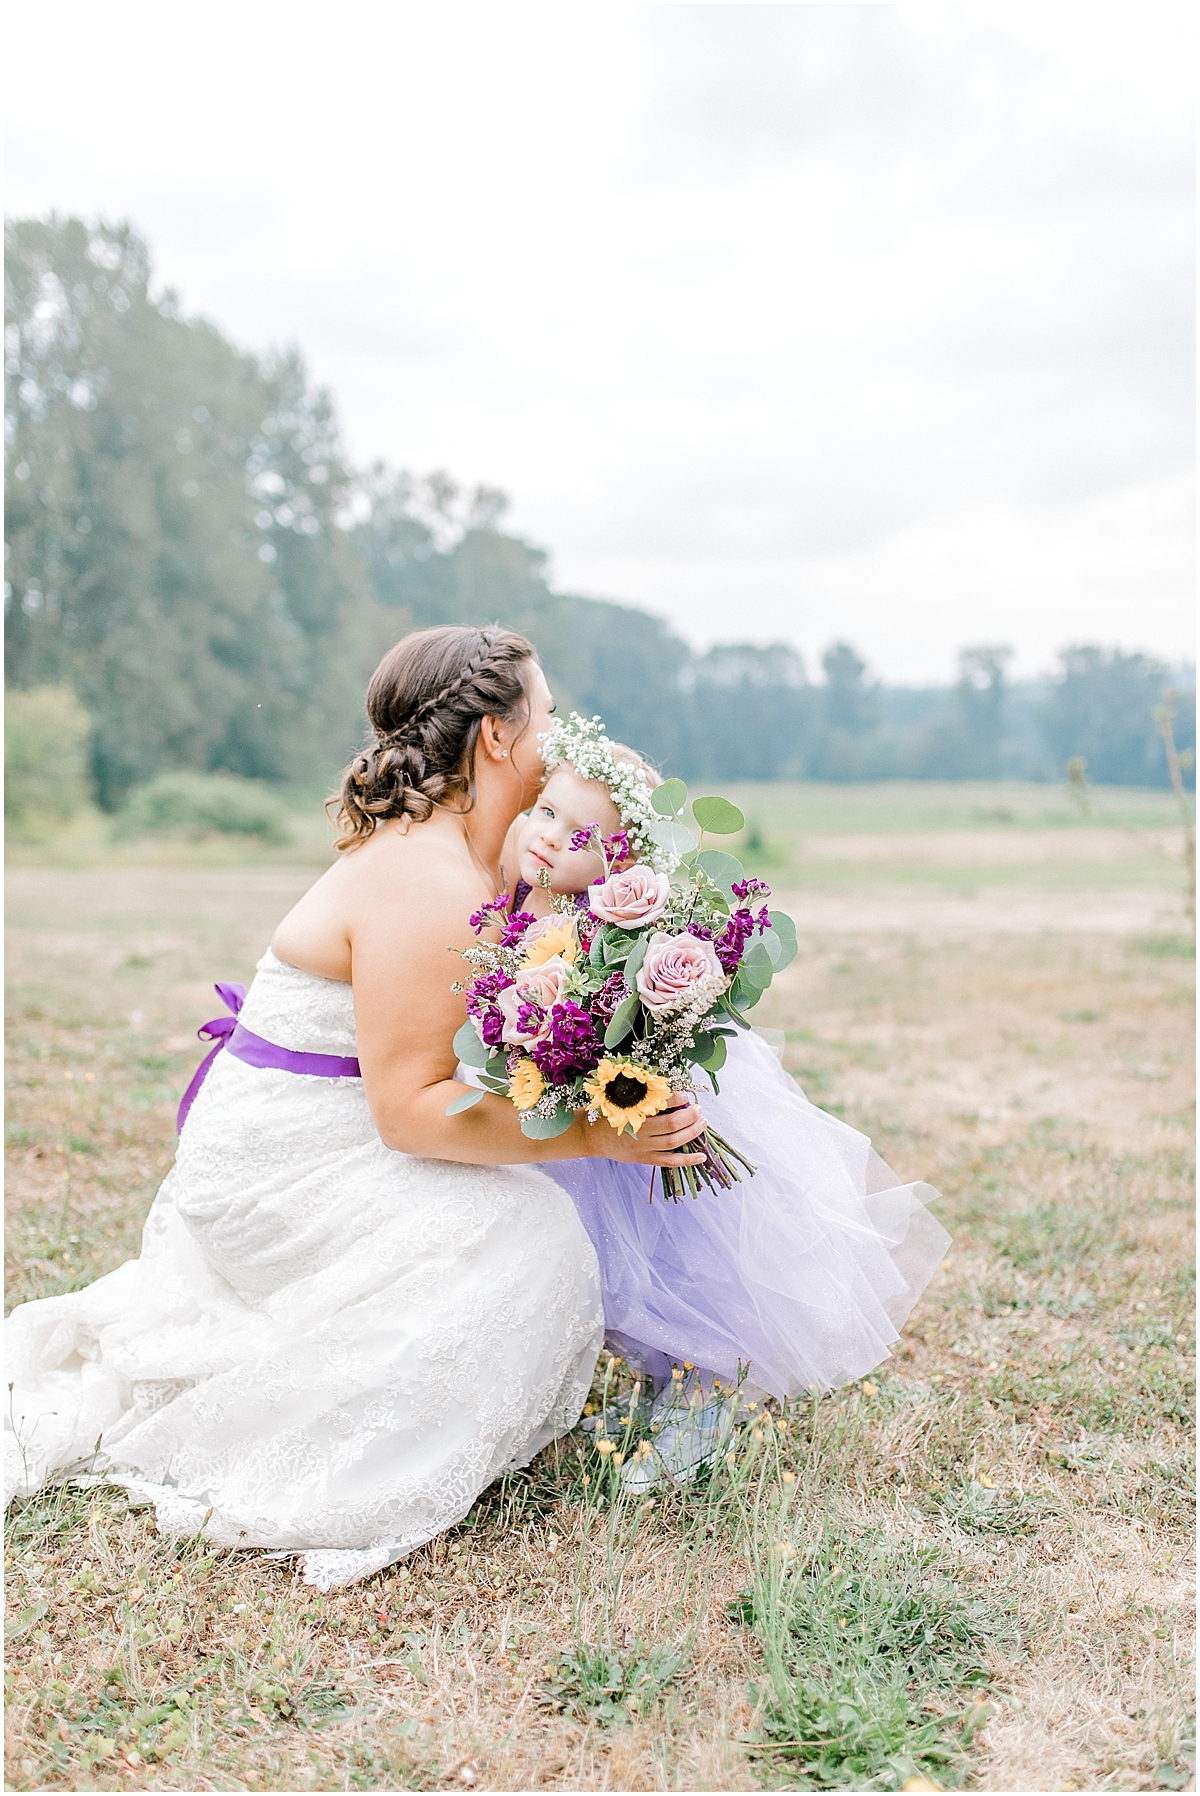 Sunflower themed wedding with purple accents, Emma Rose Company Seattle Wedding Photographer, Light and Airy photographer Kindred Presets Wedding Details PNW_0134.jpg